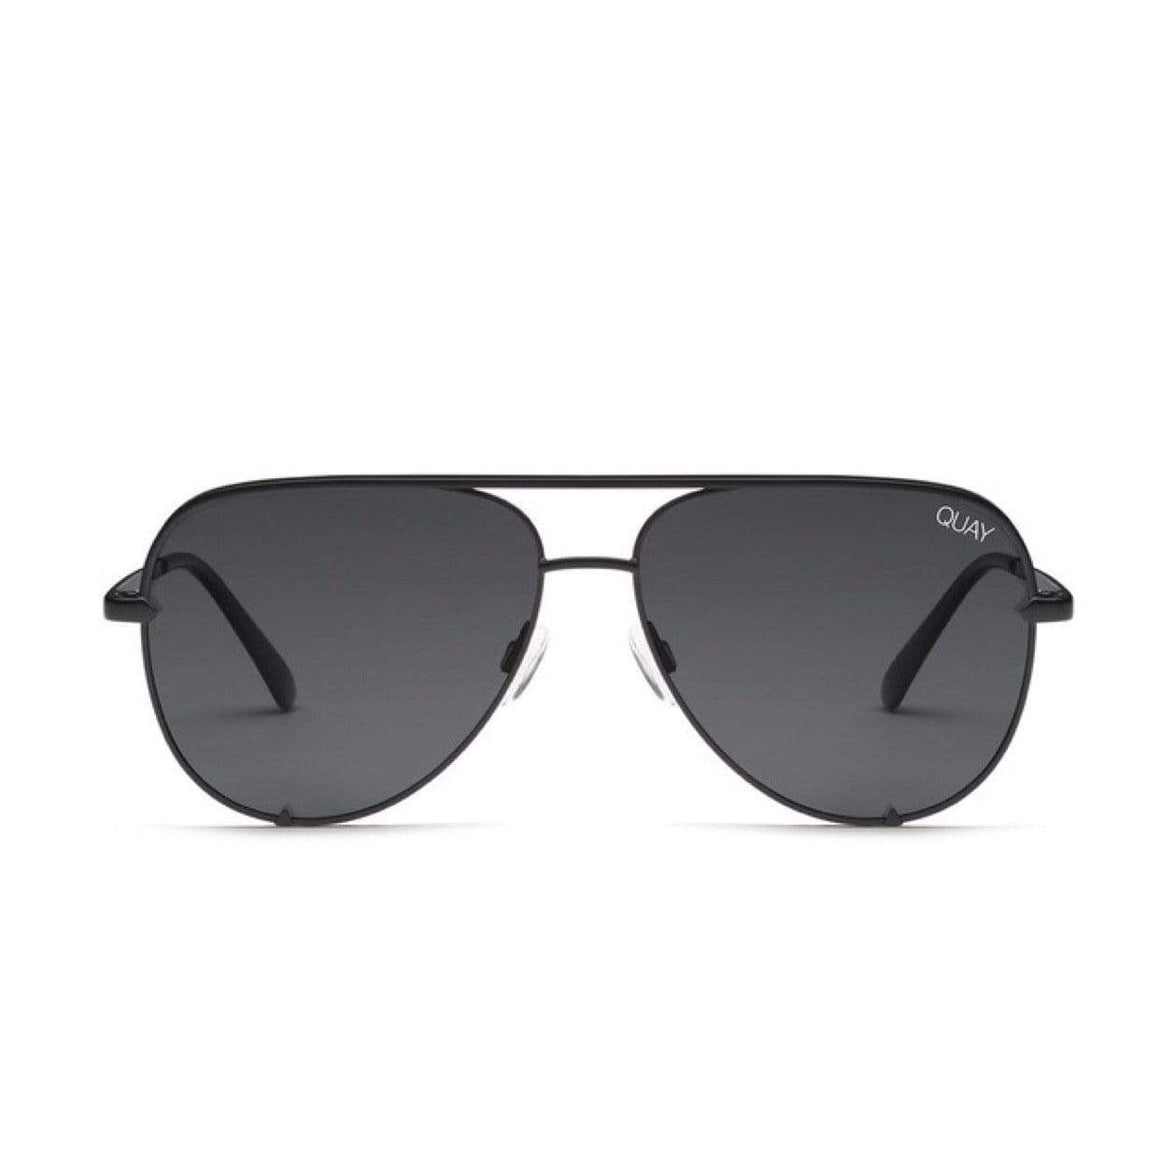 Quay - High Key Sunglasses - Black / Smoke Sunglasses Quay